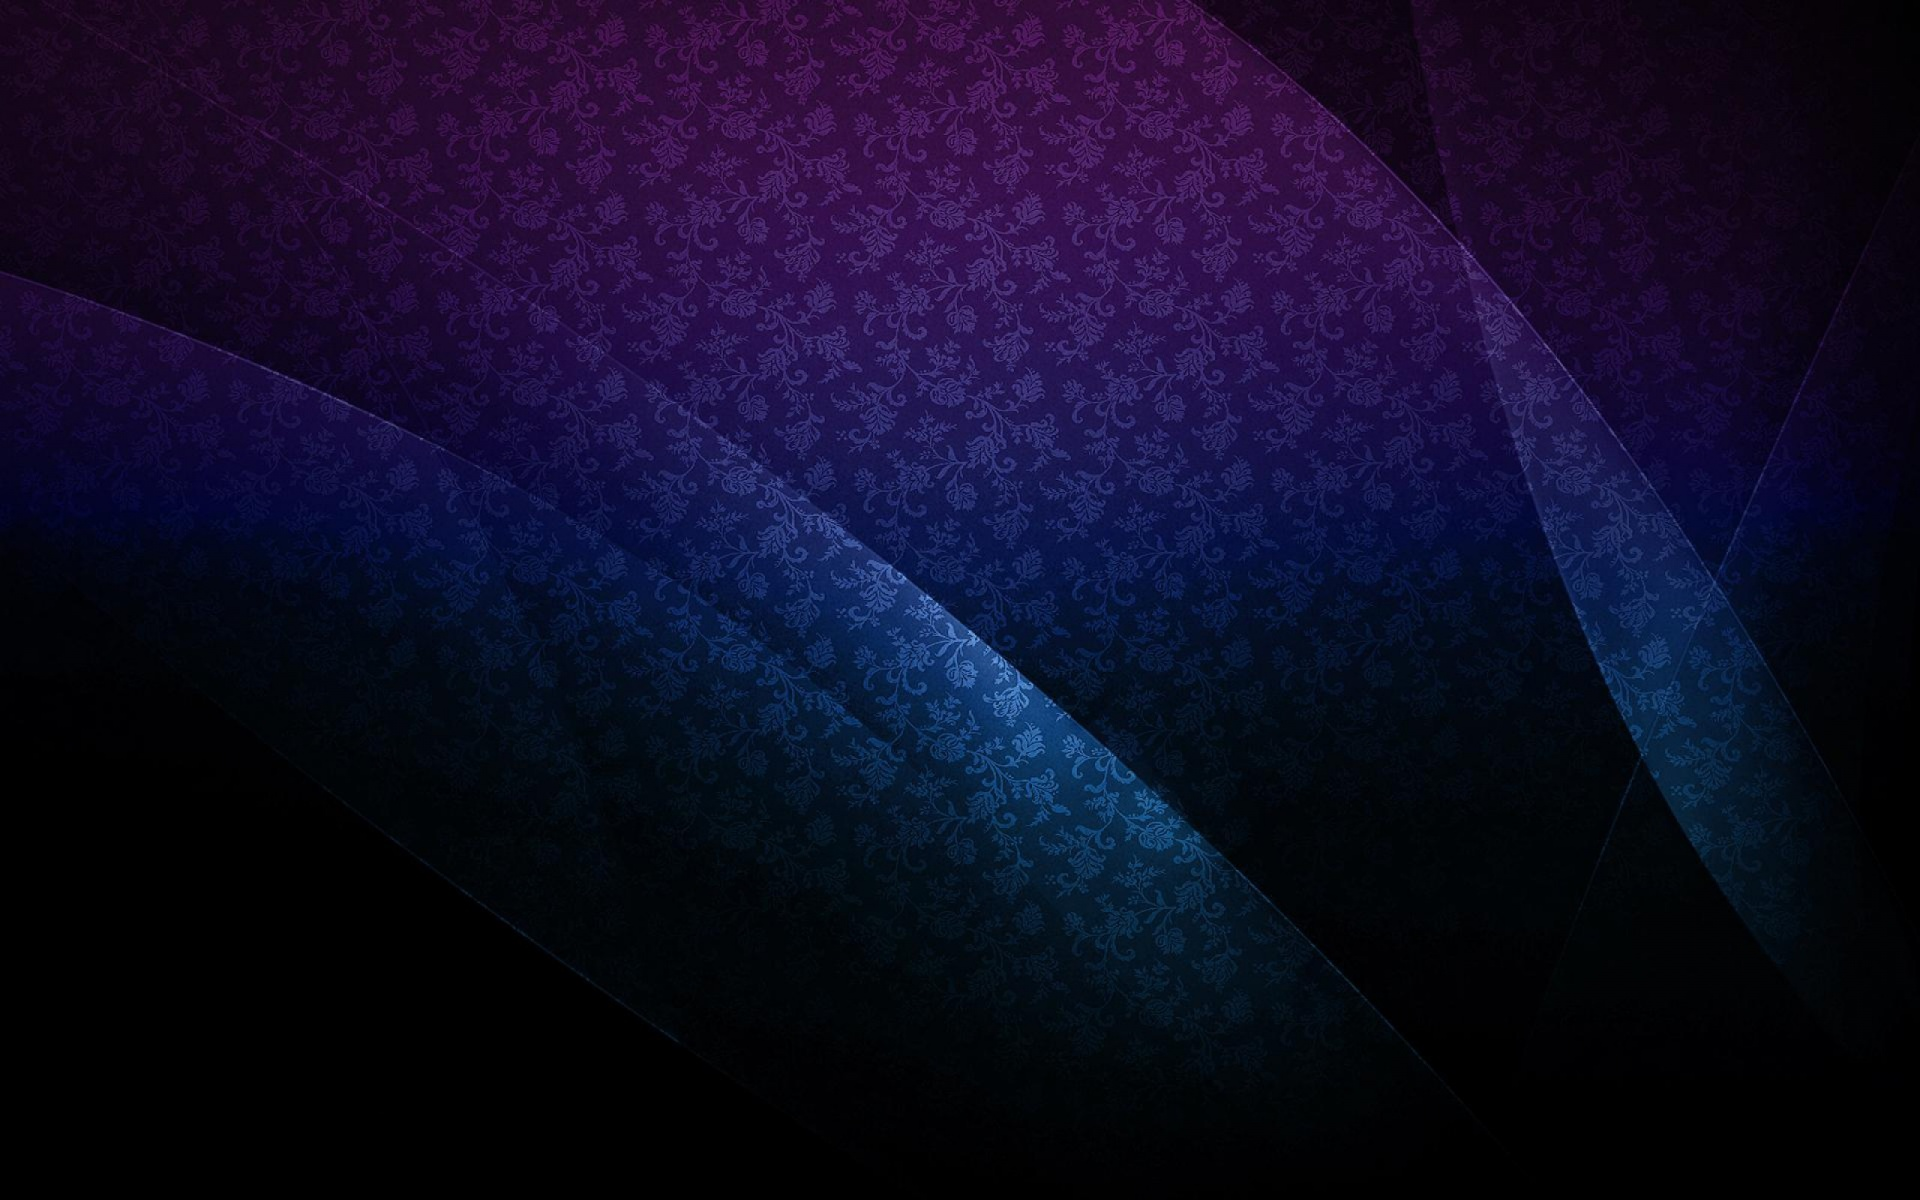 Abstract Patterns Gradient | 1920 x 1200 | Download | Close